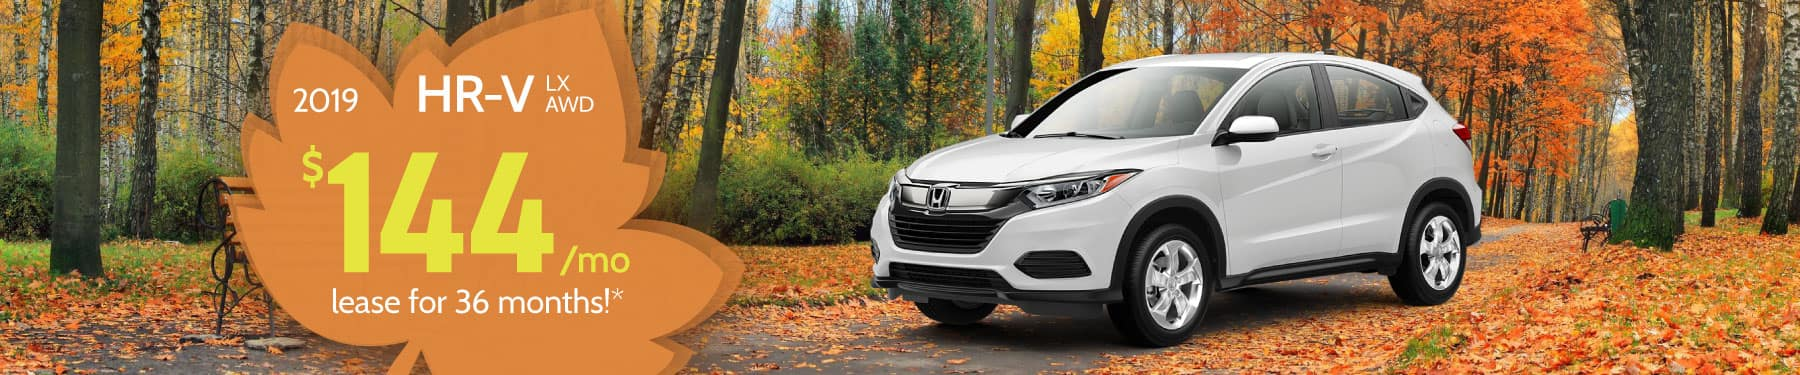 Header Photo of the 2019 Honda HR-V